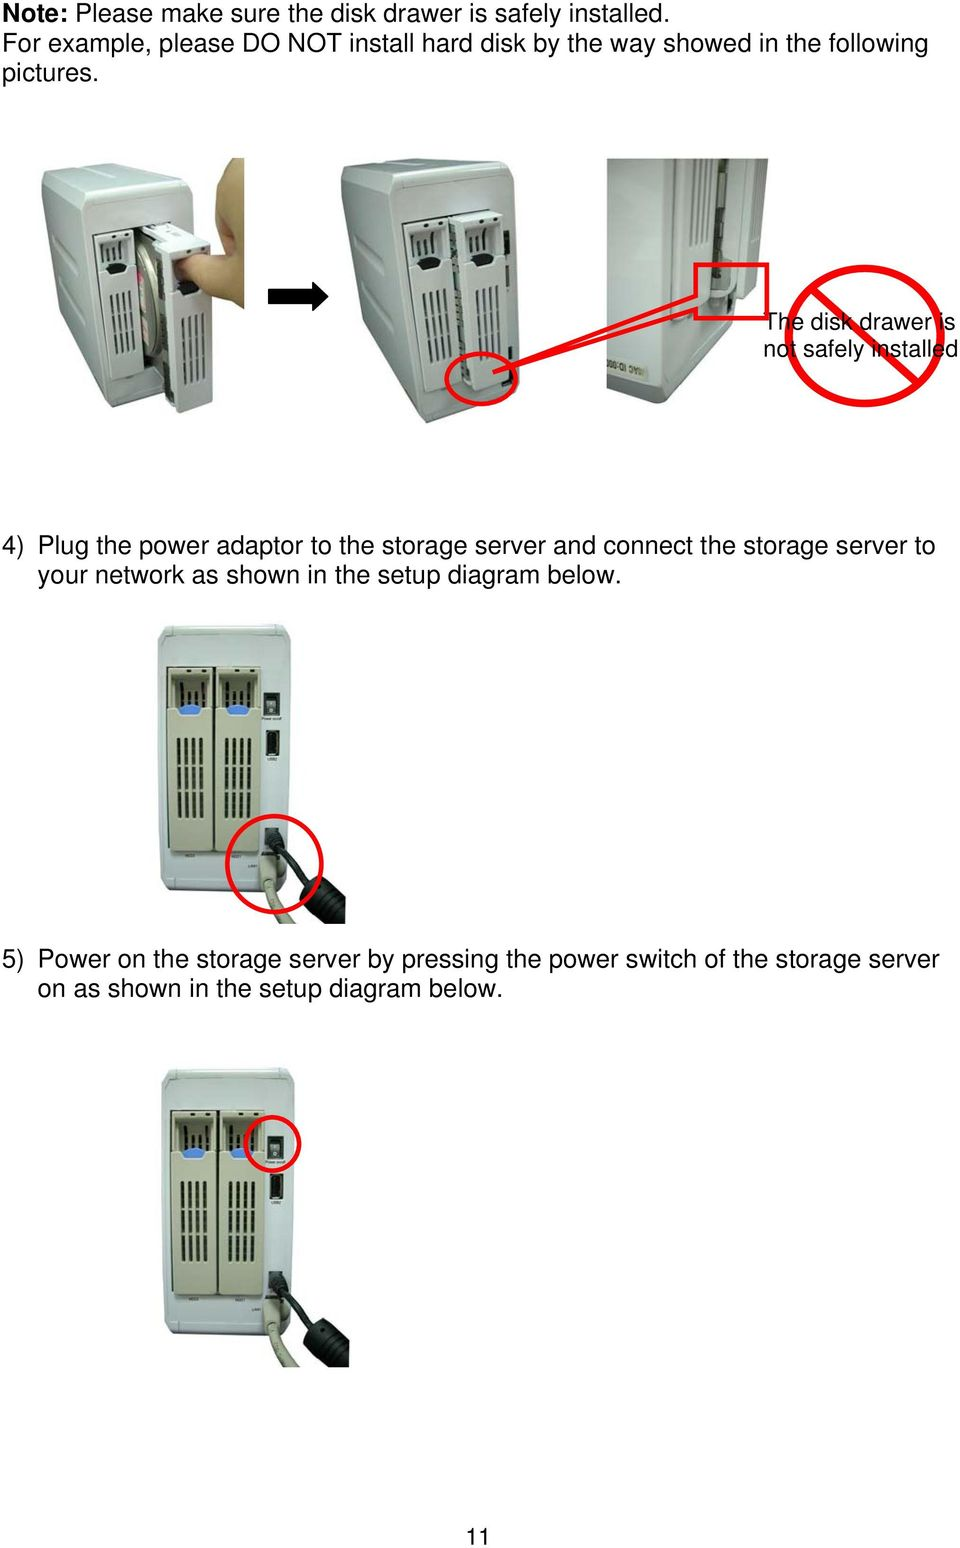 The disk drawer is not safely installed 4) Plug the power adaptor to the storage server and connect the storage